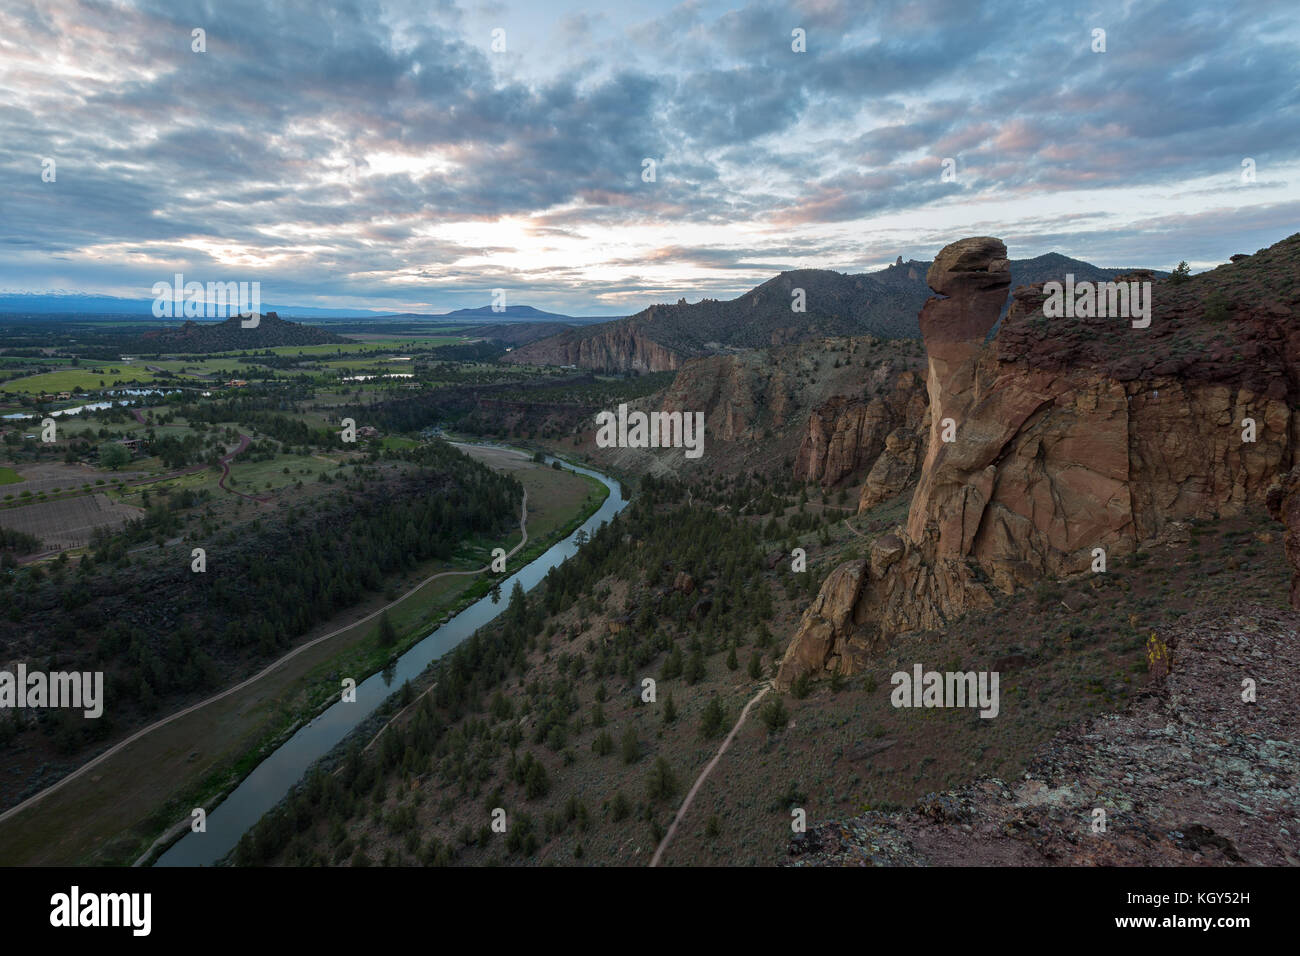 The Crooked River winds through Smith Rock State Park during sunset